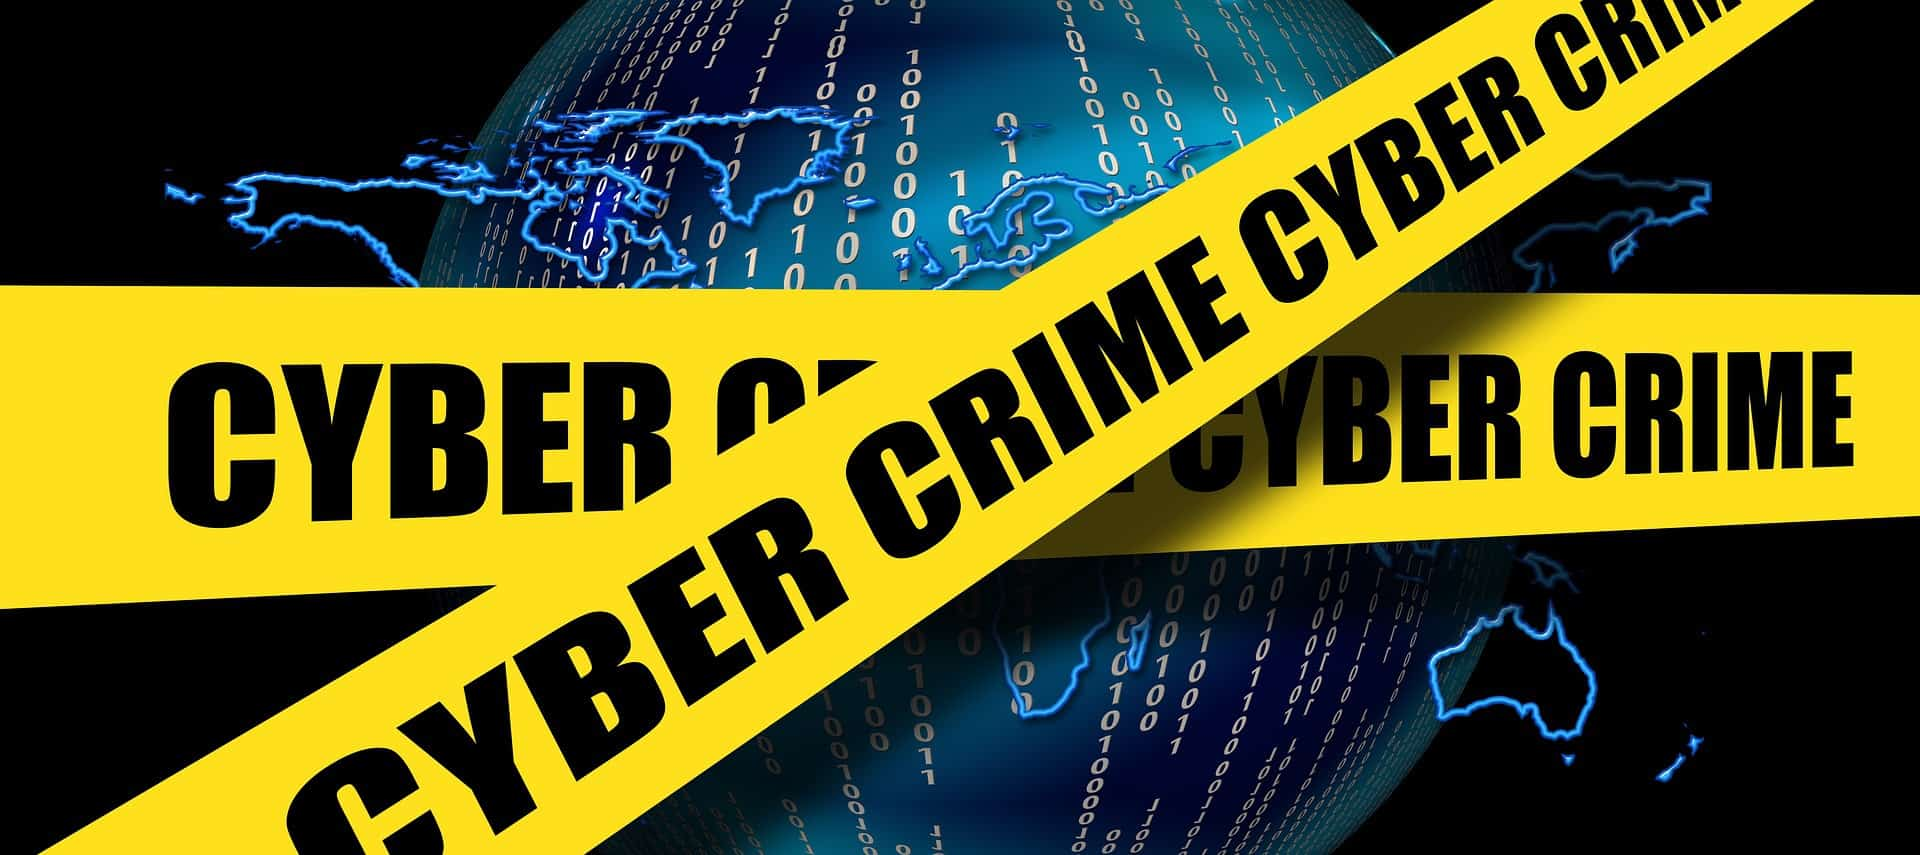 Everything Must Go Cybercriminal Forums Offer Discounts During Pandemic Homeland Security Today